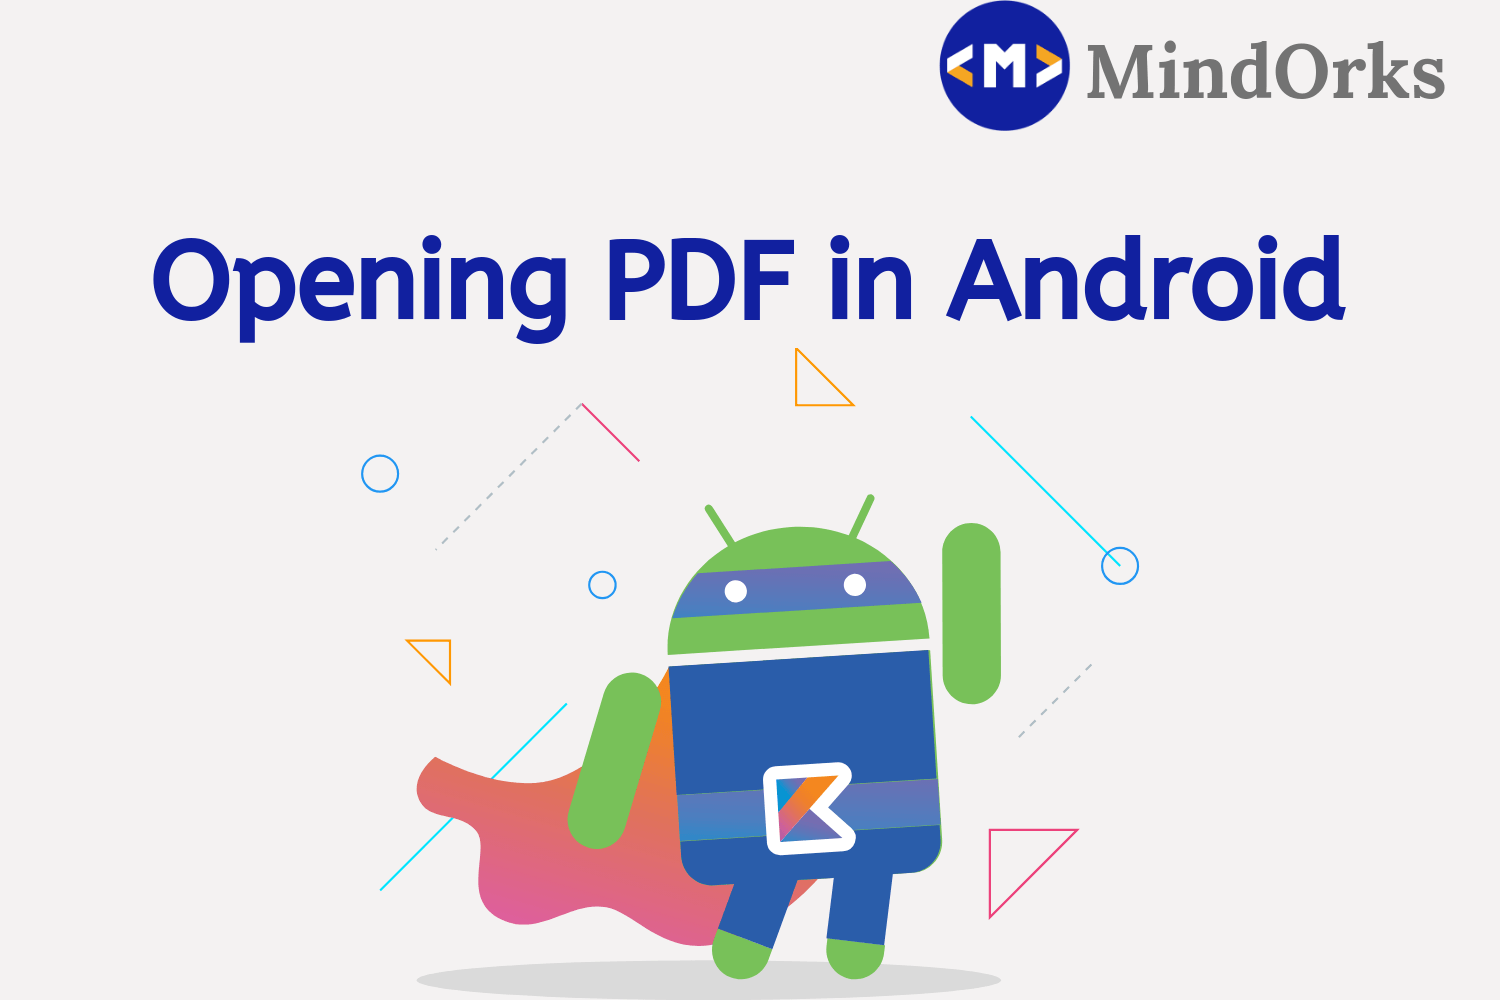 How to download a file in Android and show the progress very